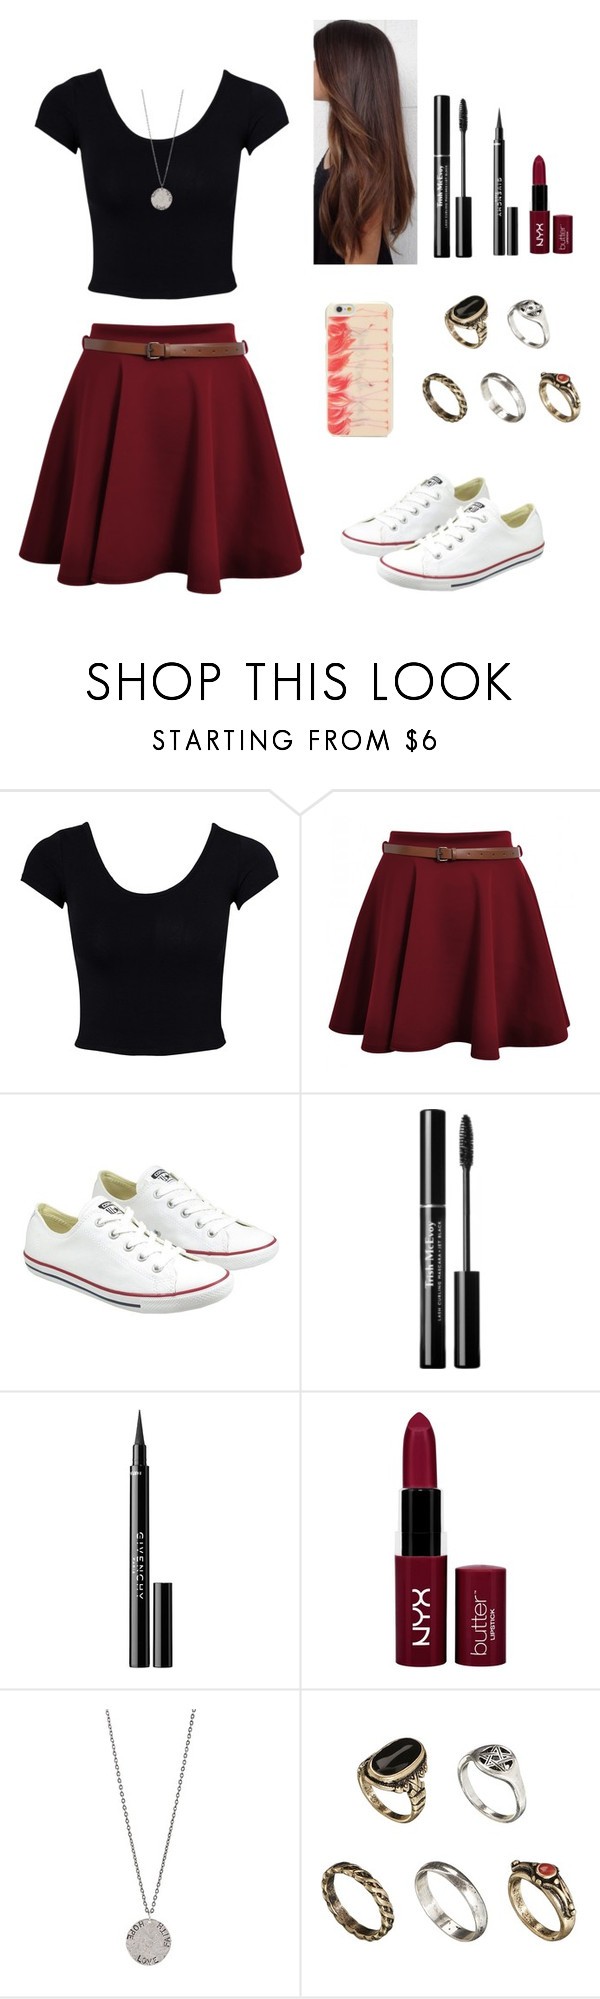 """""""Untitled #166"""" by thepearllesswonder ❤ liked on Polyvore featuring Estradeur, Converse, Trish McEvoy, Givenchy, Diana Warner, ASOS and Kate Spade"""